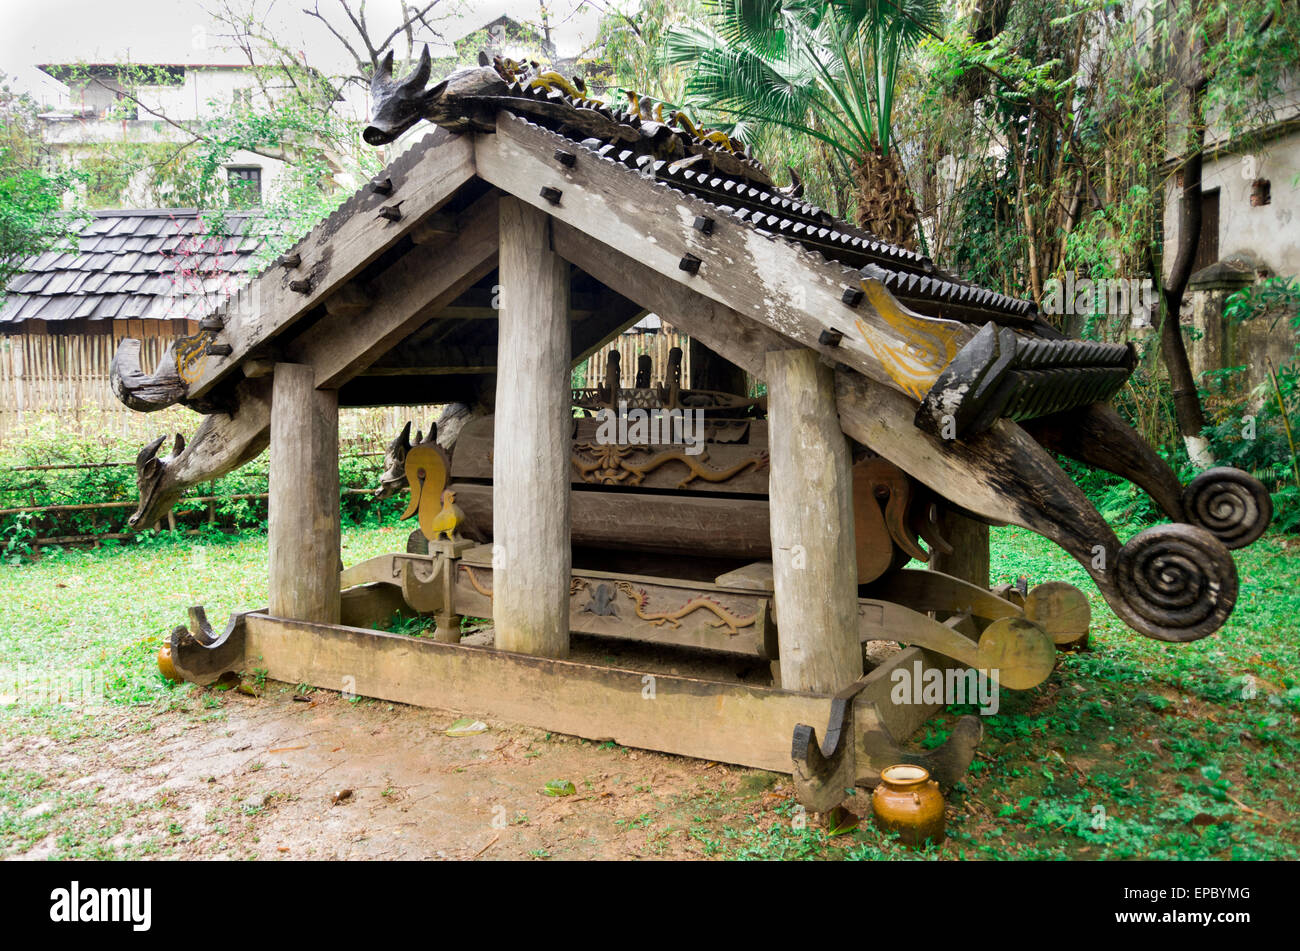 Museum Of Ethnology - Cotu Tomb - Stock Image